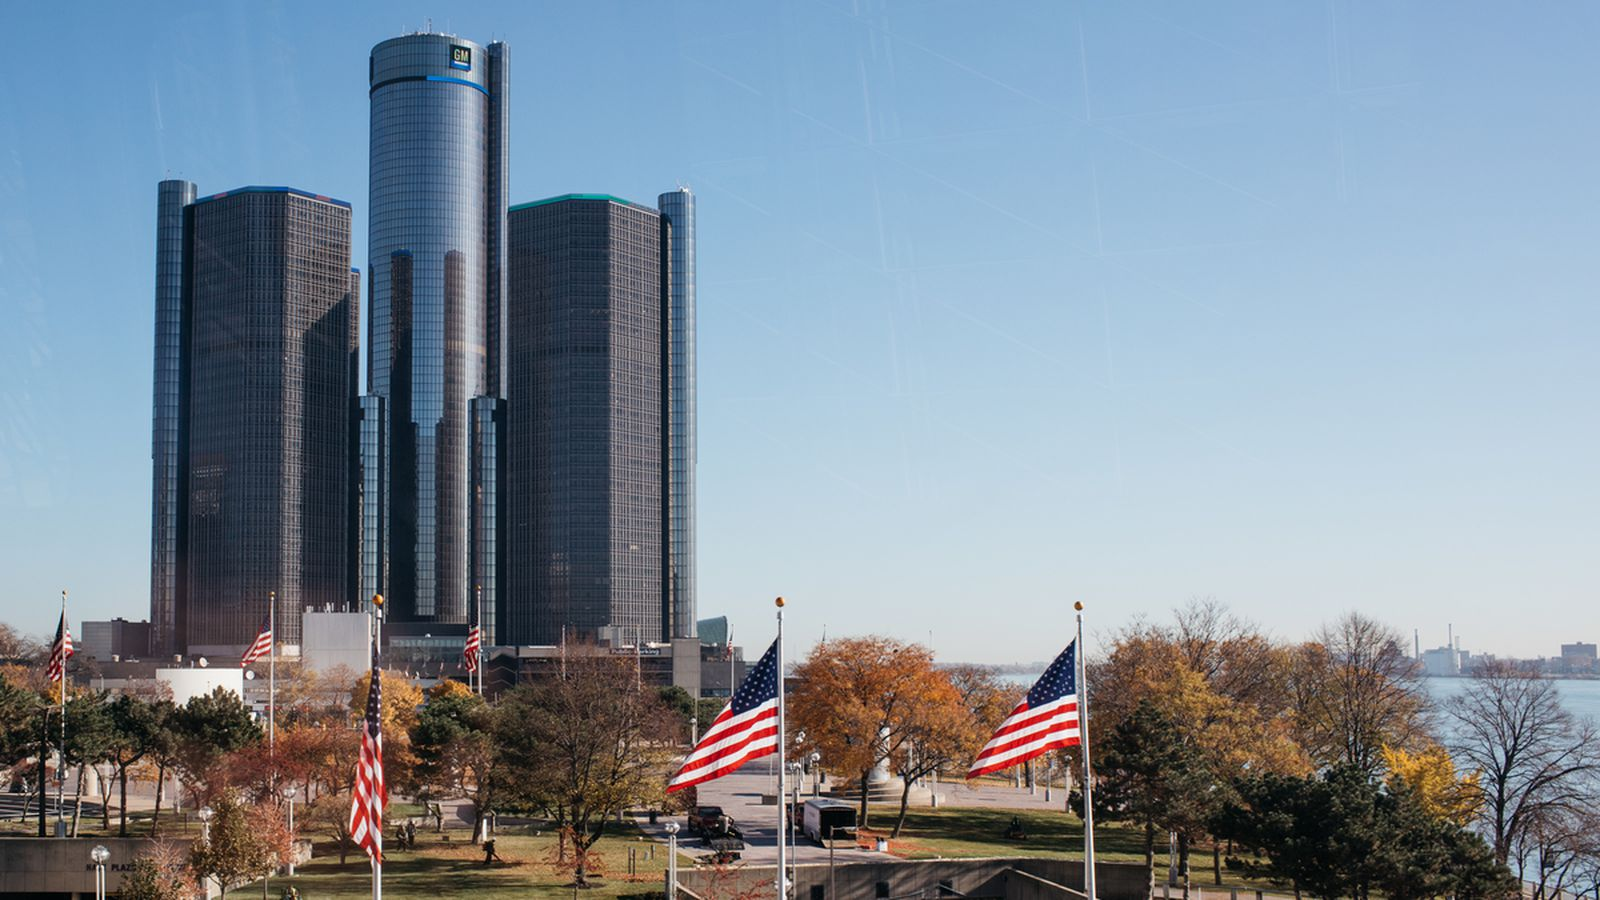 The Gm Renaissance Center Has An App To Help Visitors Find